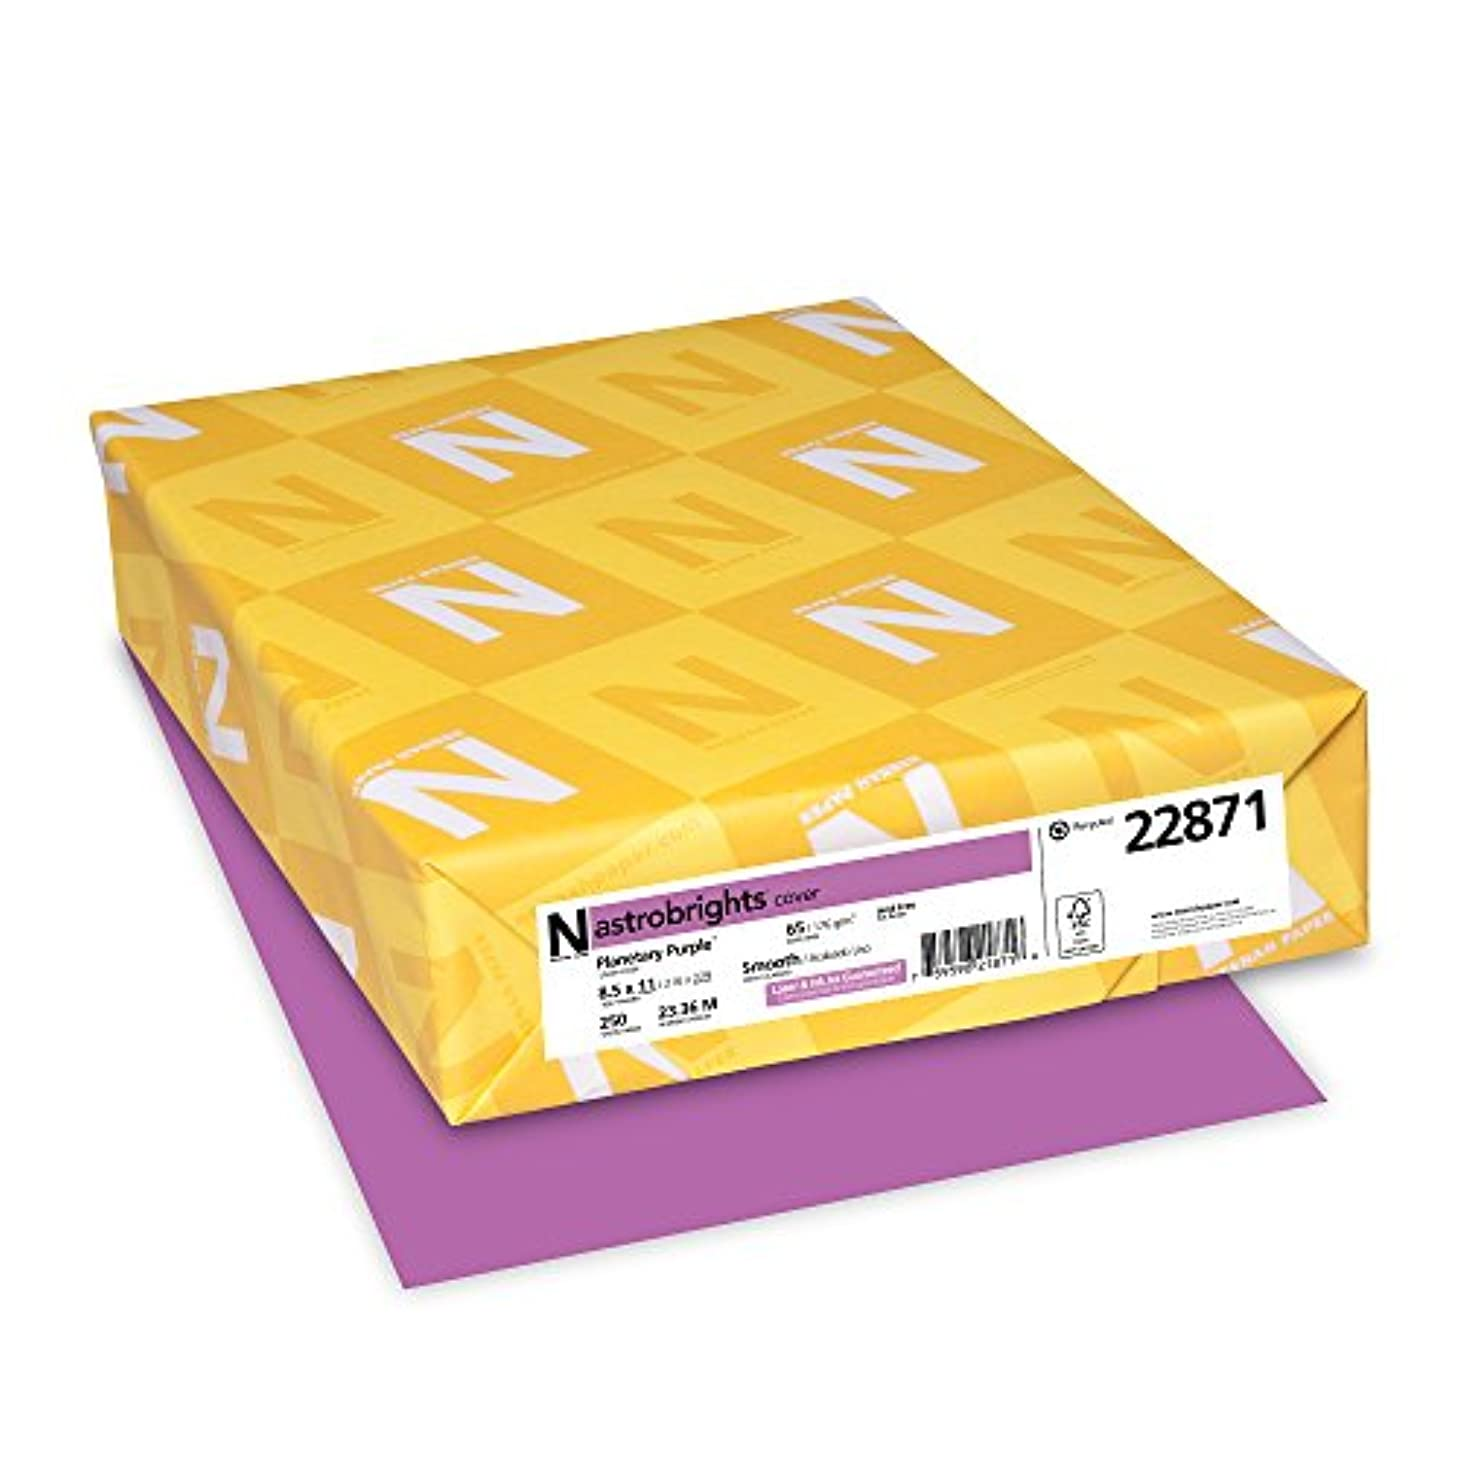 Wausau Astrobrights Cardstock, 65 lb, 8.5 x 11 Inches, Planetary Purple, 250 Sheets (22871)